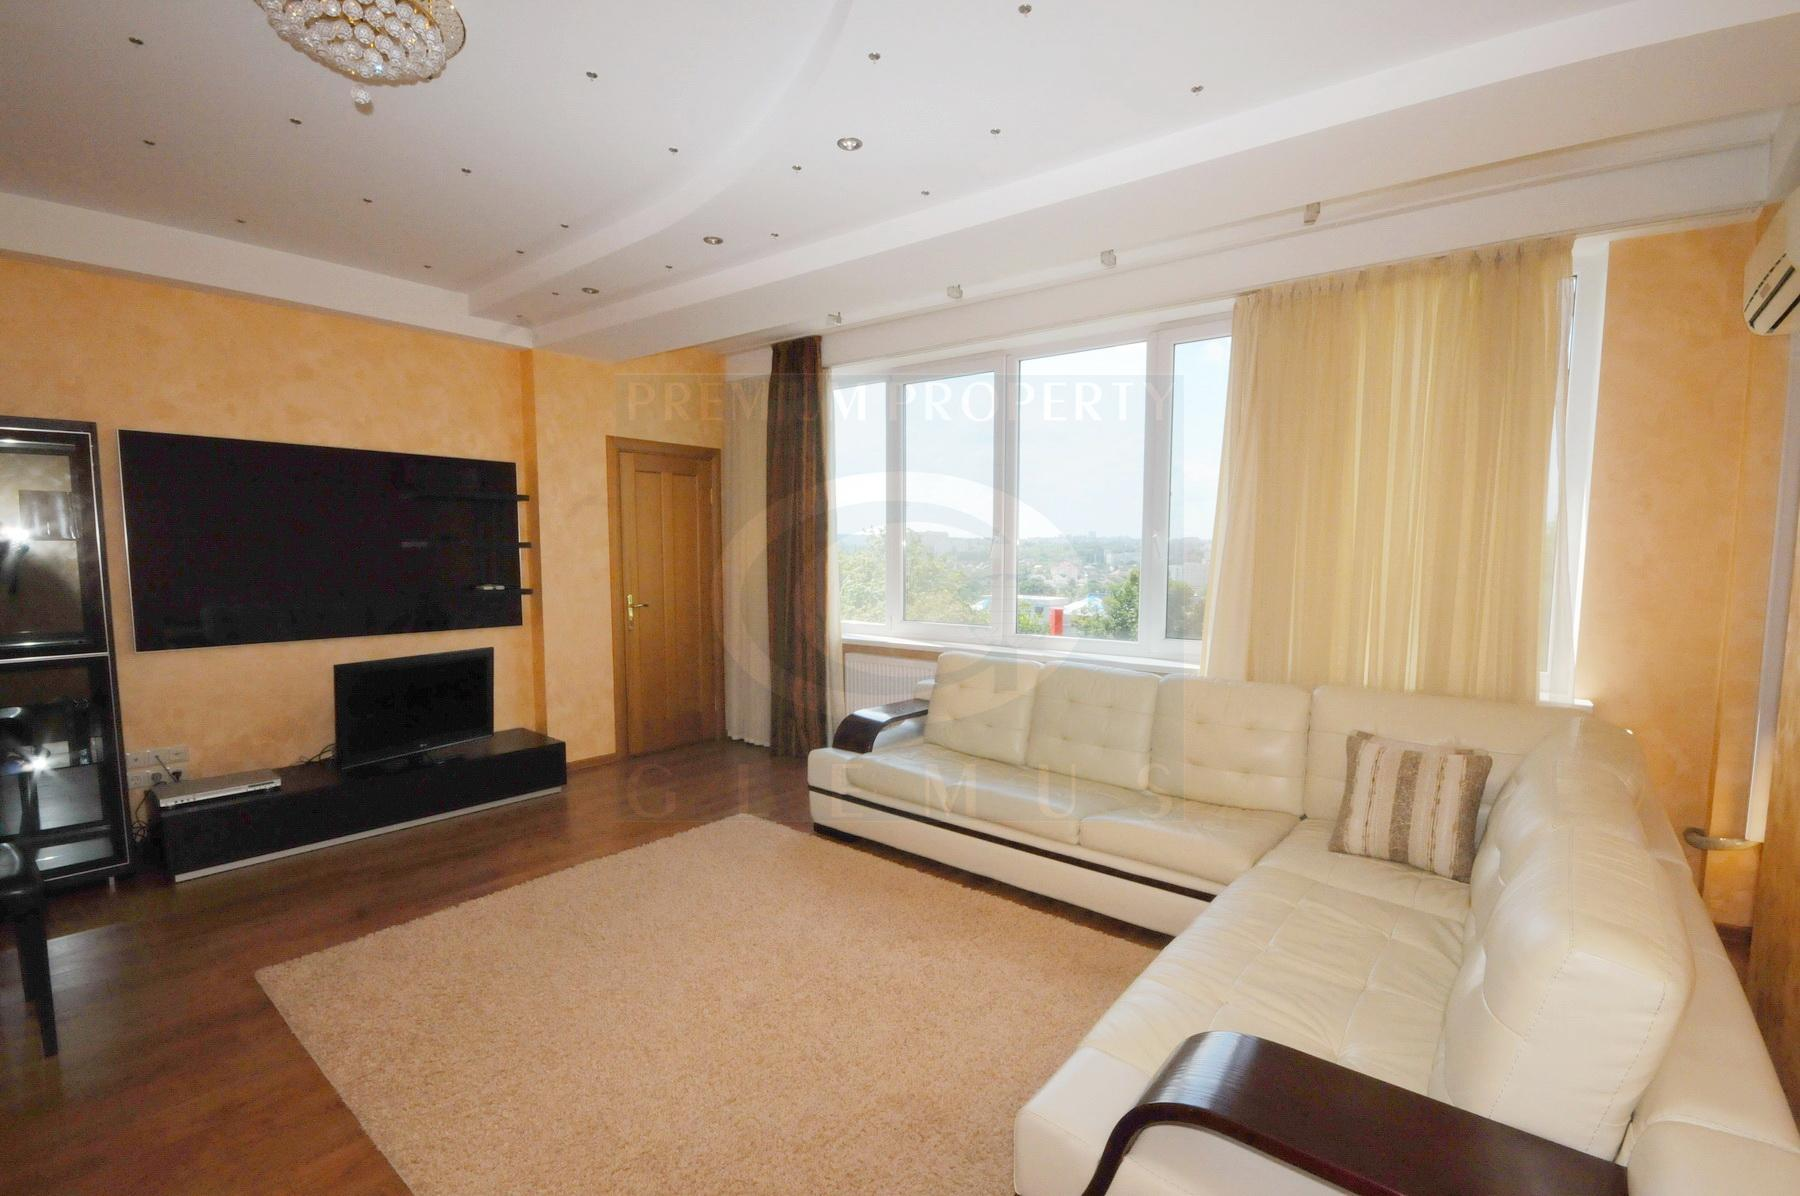 Spacious apartment next to Ecosport Gym